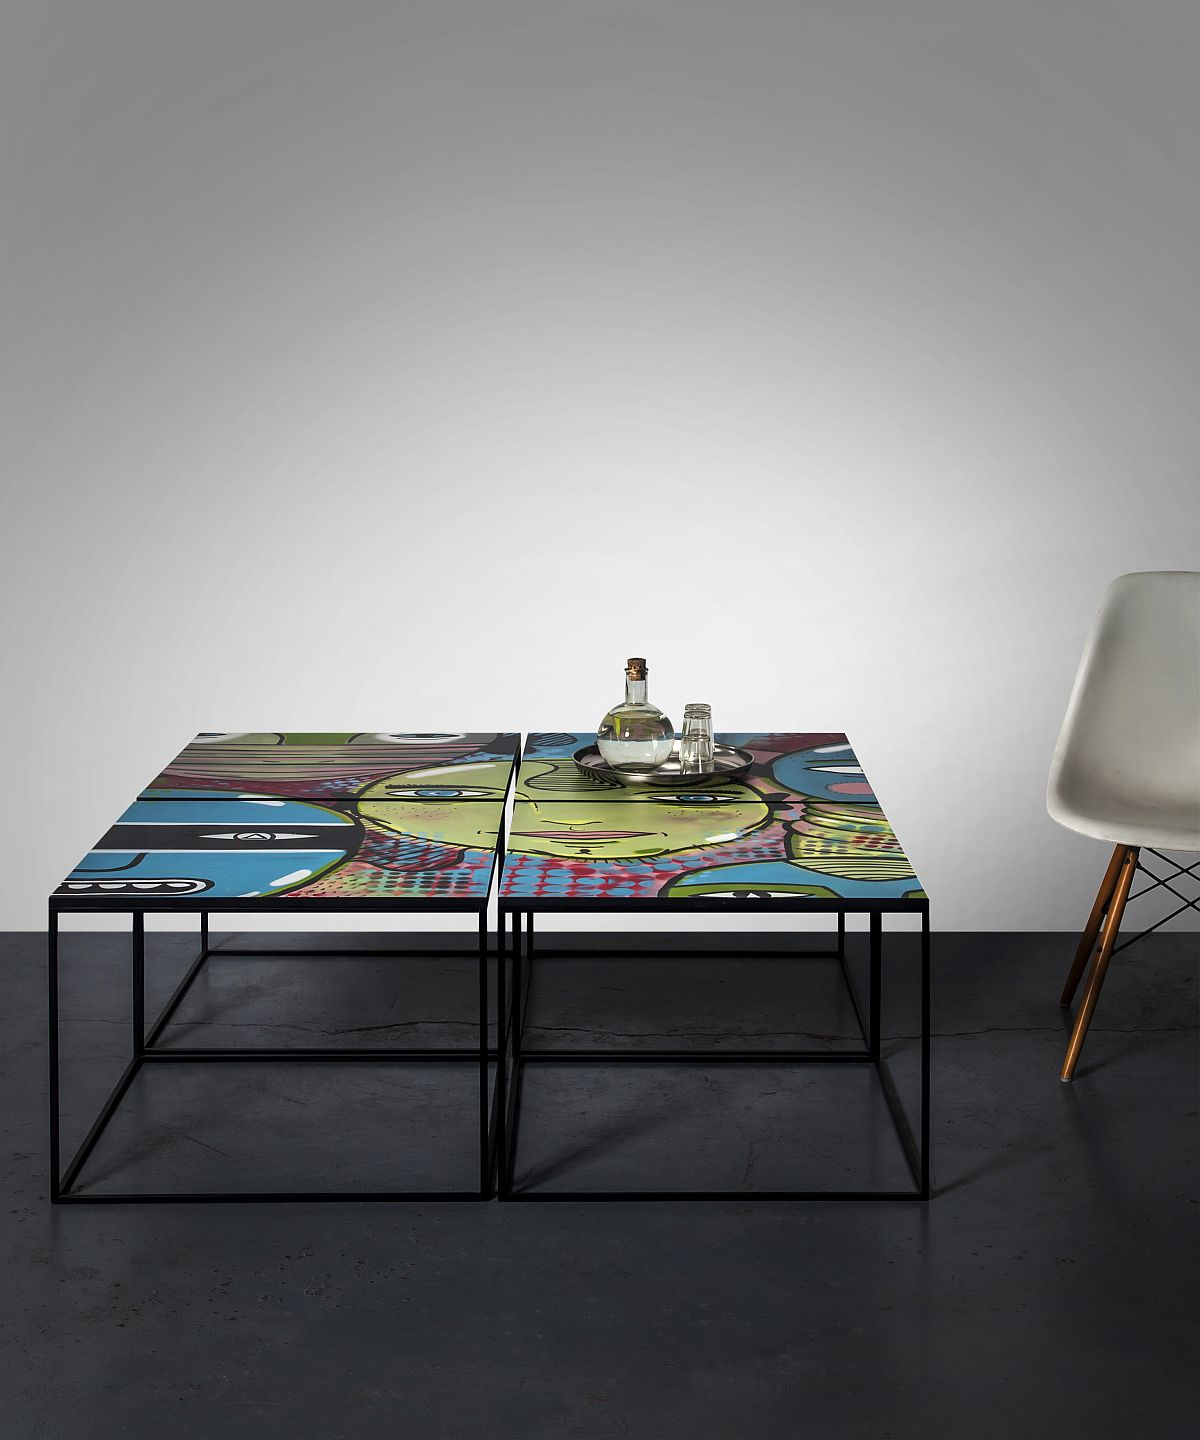 Street Capture Coffee Table is a work of art that is perfect for any living space